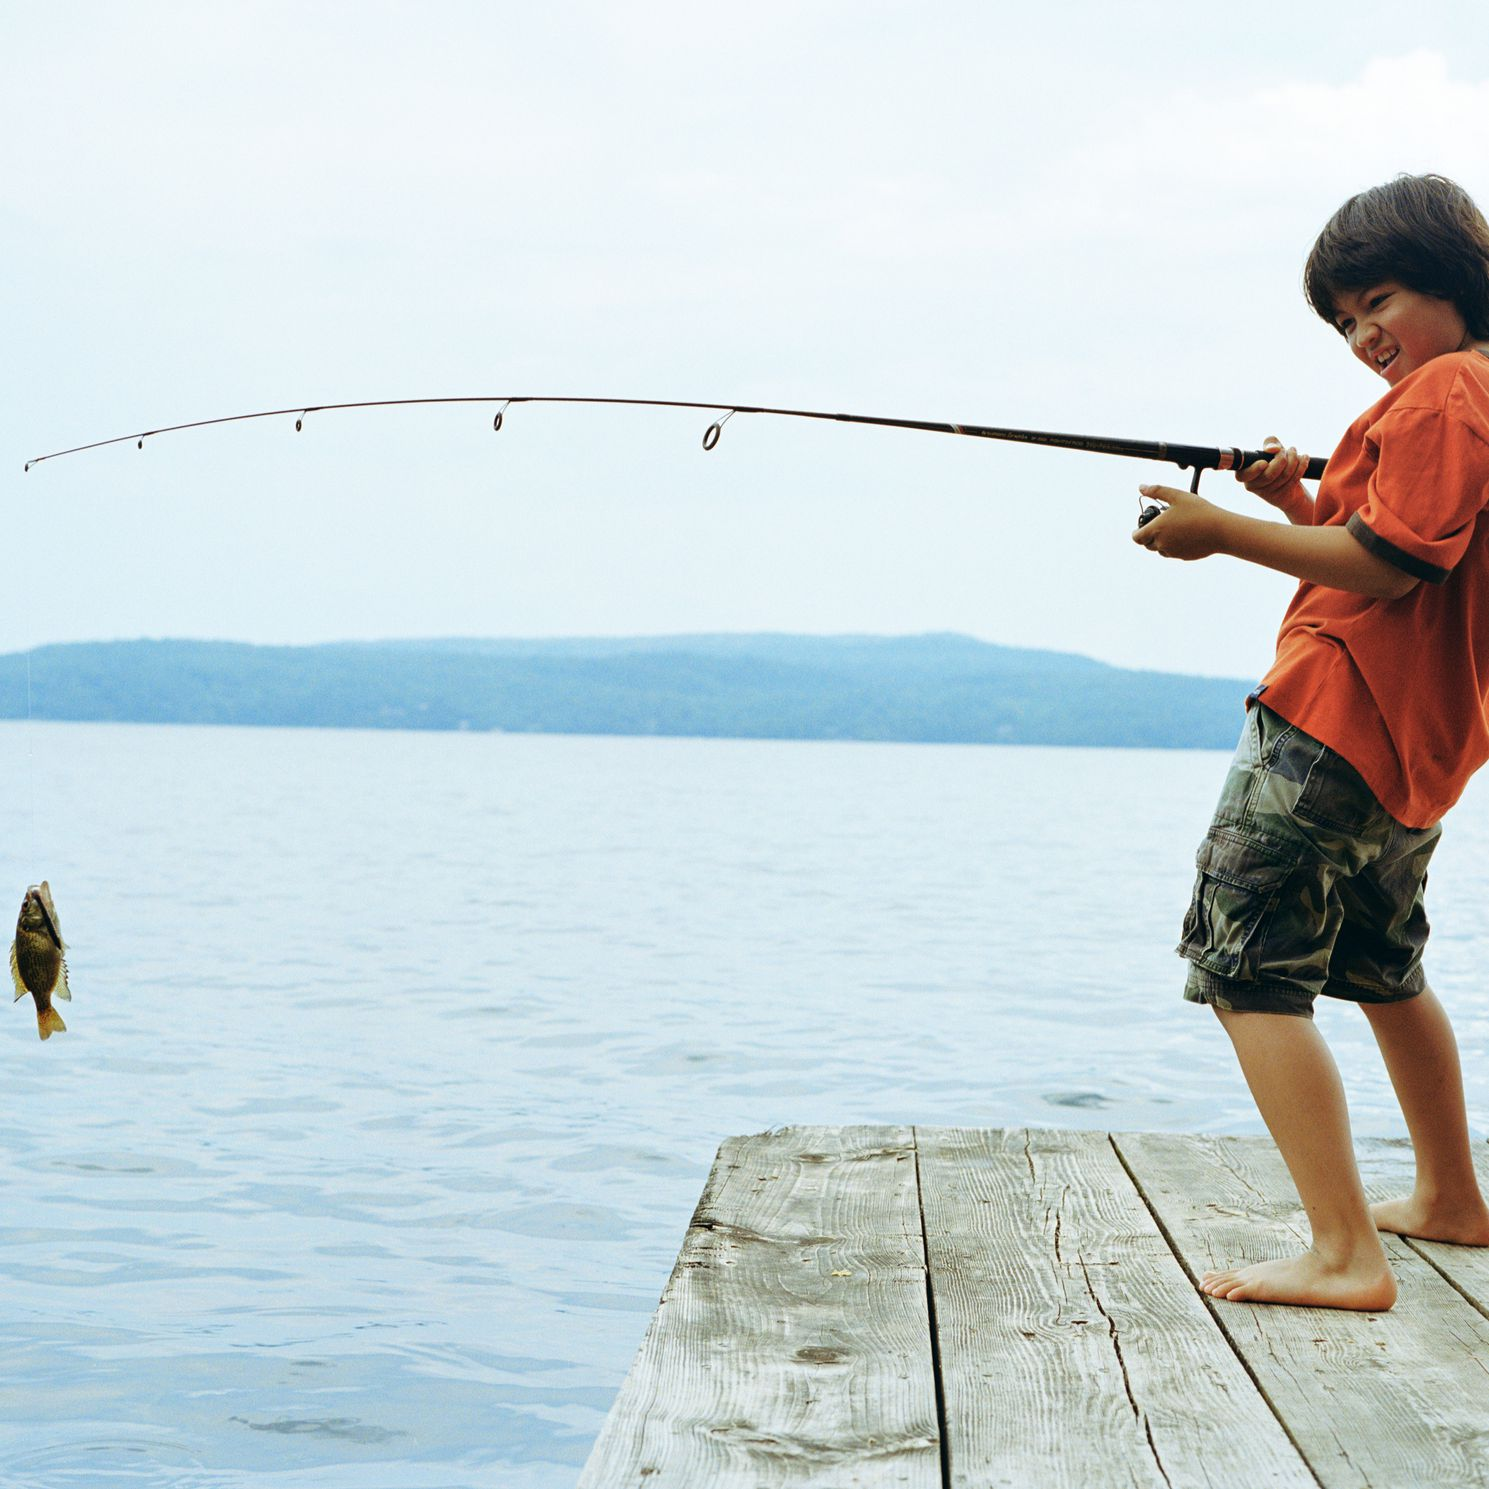 The 7 Best Kids' Fishing Poles of 2019